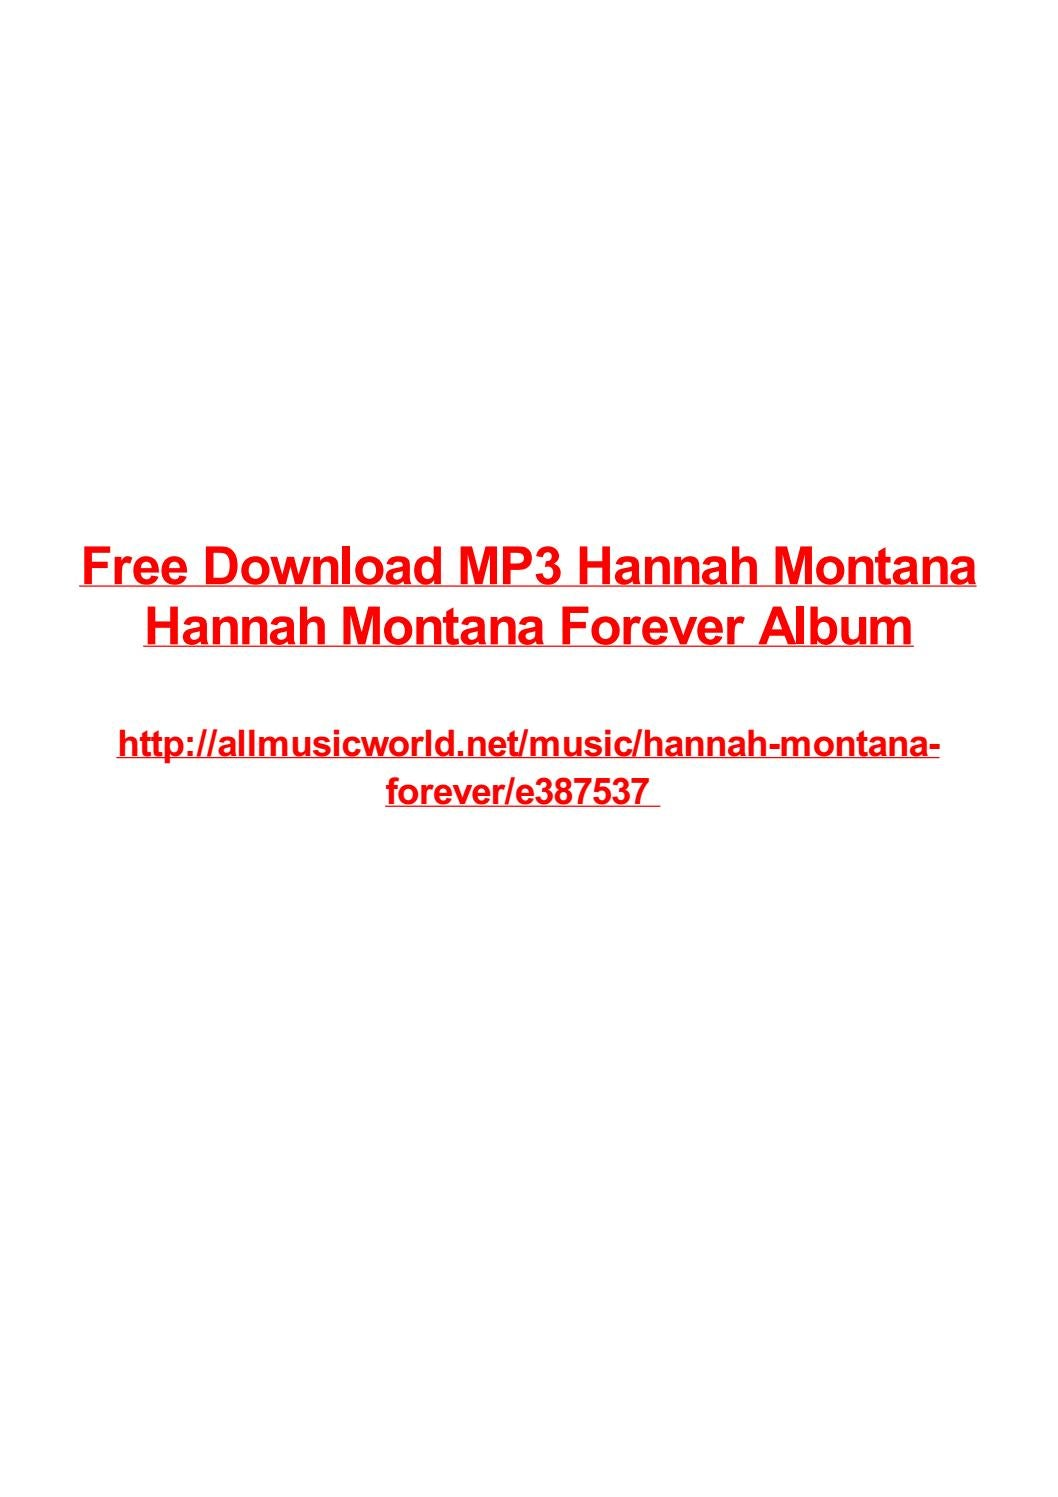 Free Download Mp3 Hannah Montana Hannah Montana Forever Album By